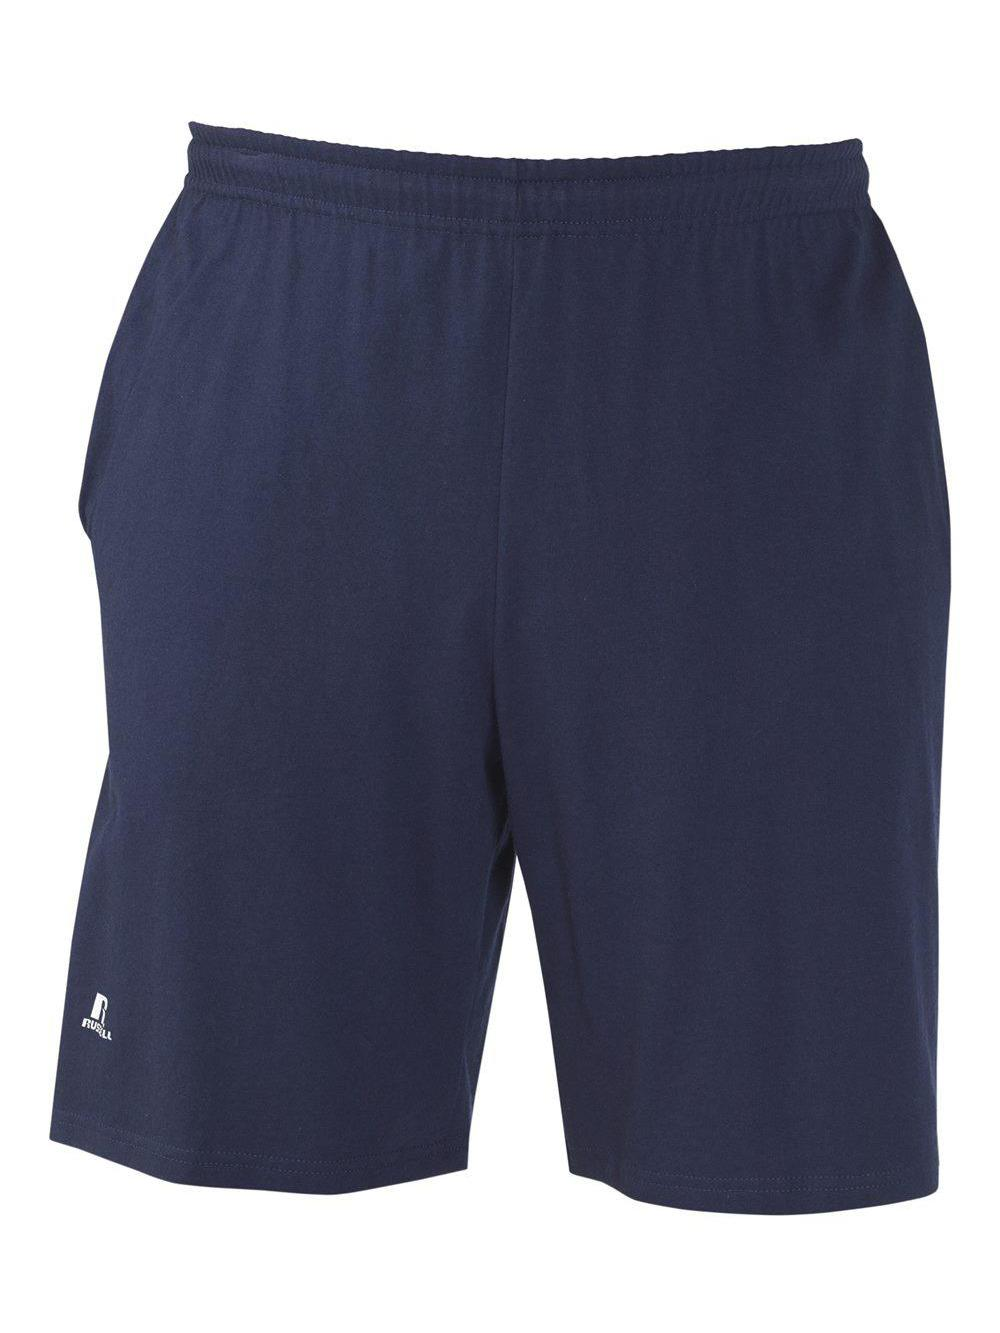 Russell-Athletic-Essential-Jersey-Cotton-Shorts-with-Pockets-25843M thumbnail 11